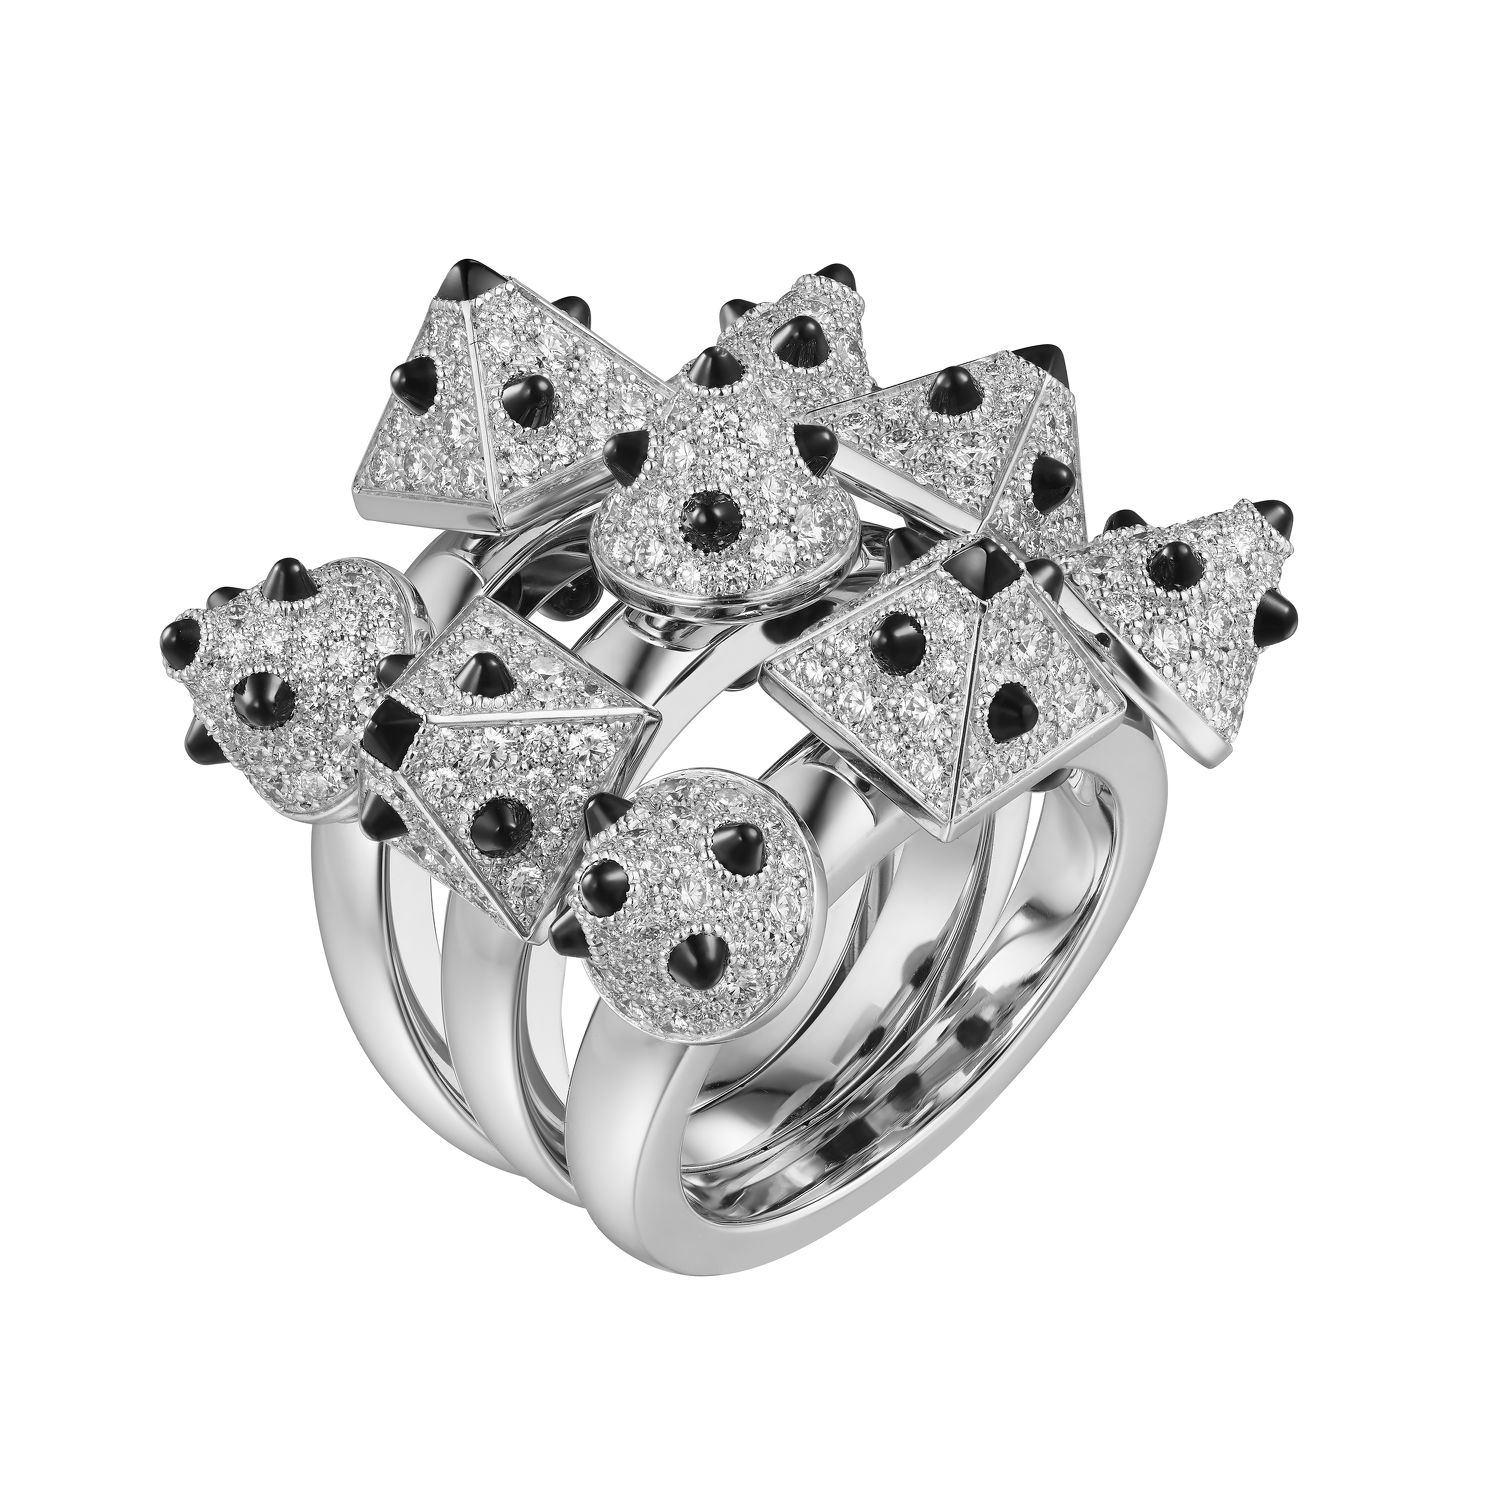 articulated ring dotted with pyramidal diamond and onyx studs - THE EDGE SINGAPORE